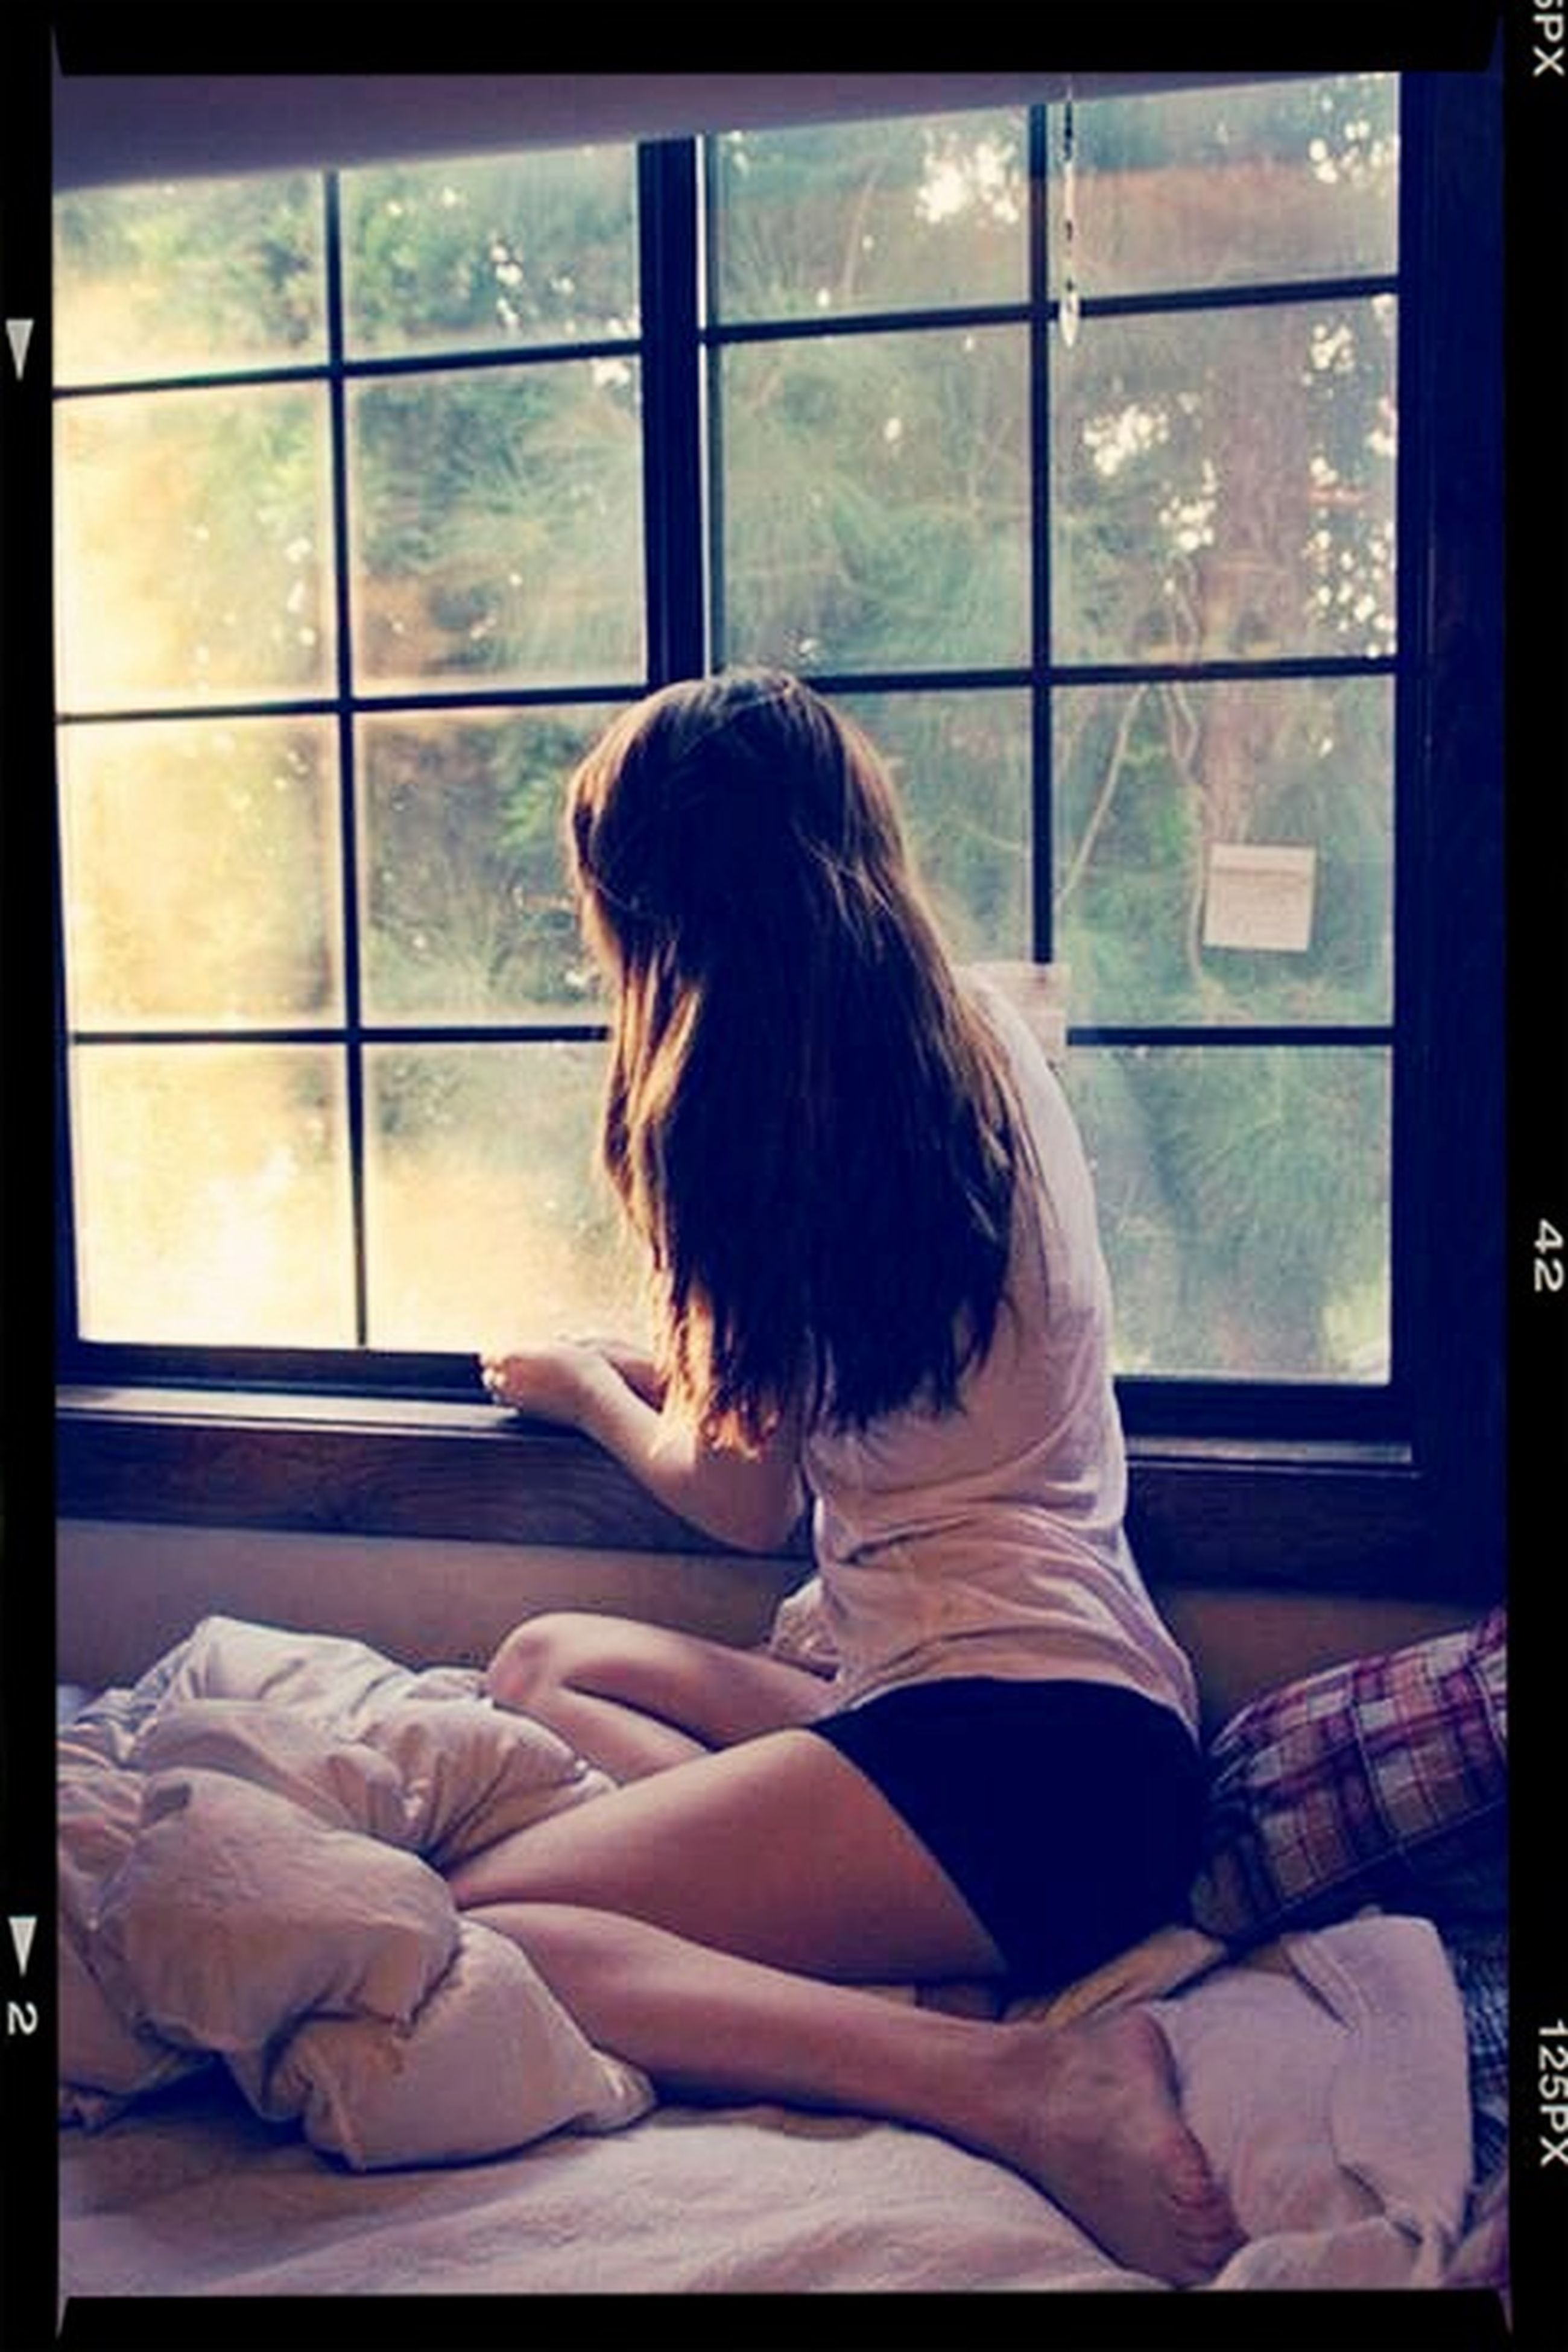 window, indoors, rear view, transfer print, glass - material, transparent, lifestyles, person, looking through window, sitting, auto post production filter, leisure activity, long hair, men, standing, relaxation, waist up, curtain